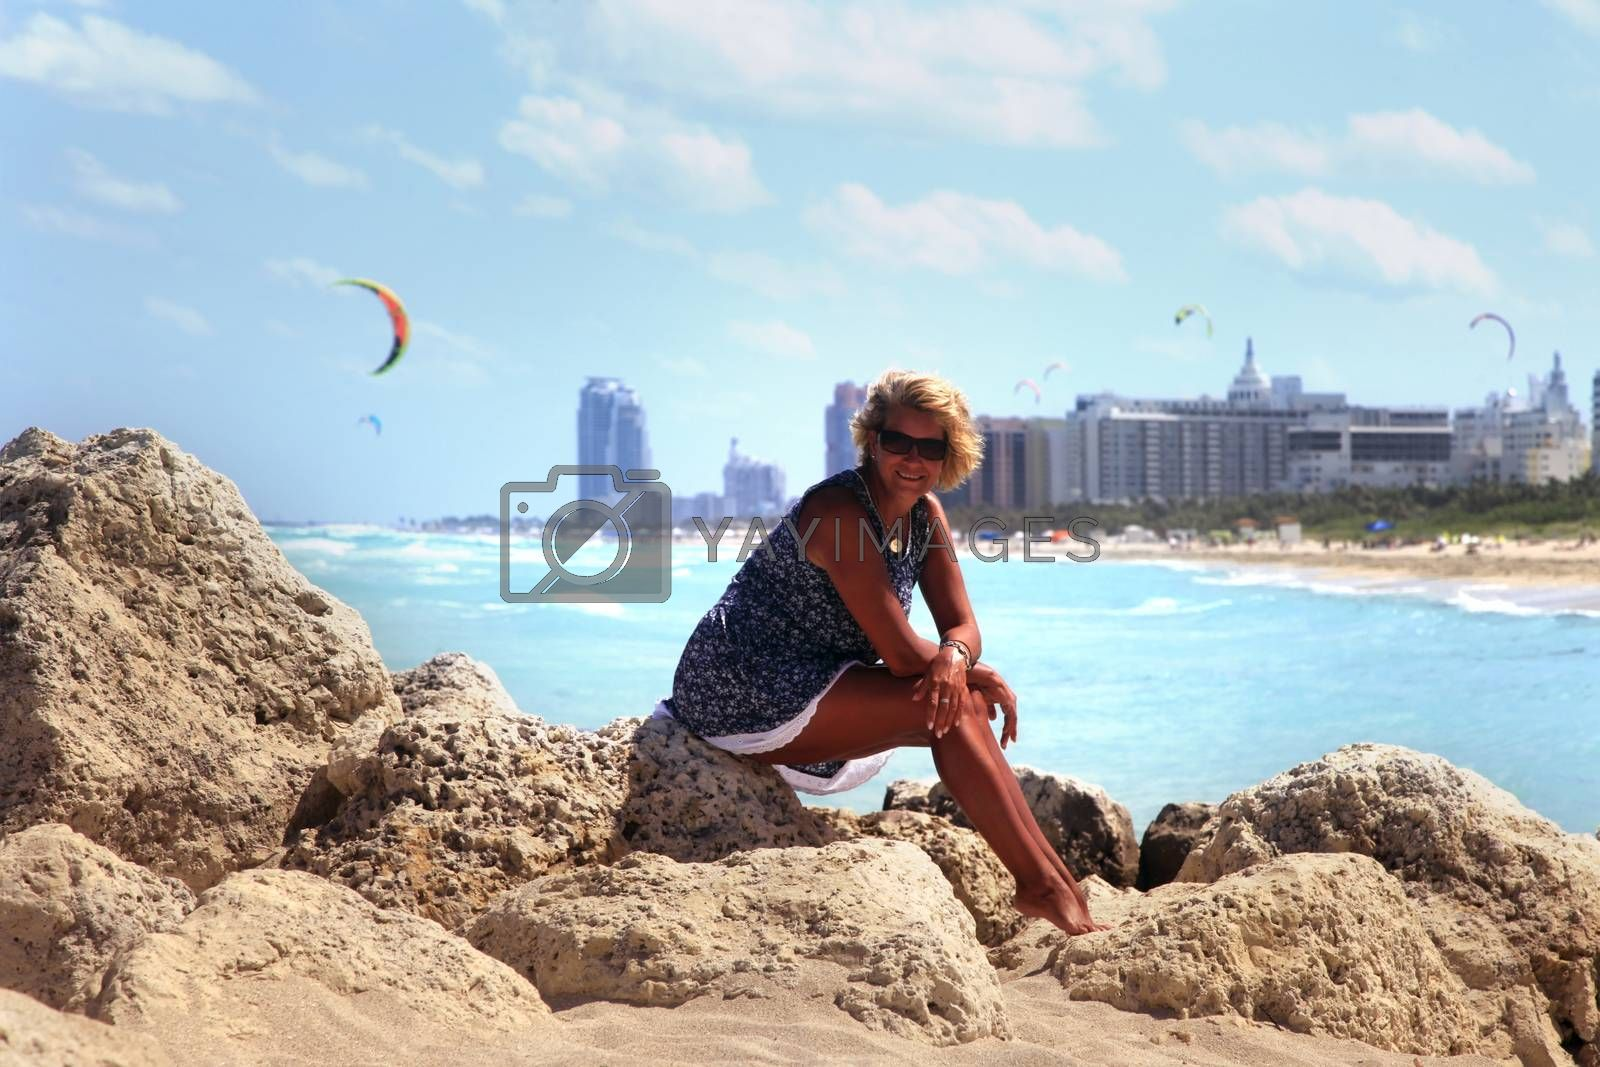 The girl sits on a stone against the backdrop of Miami Beach